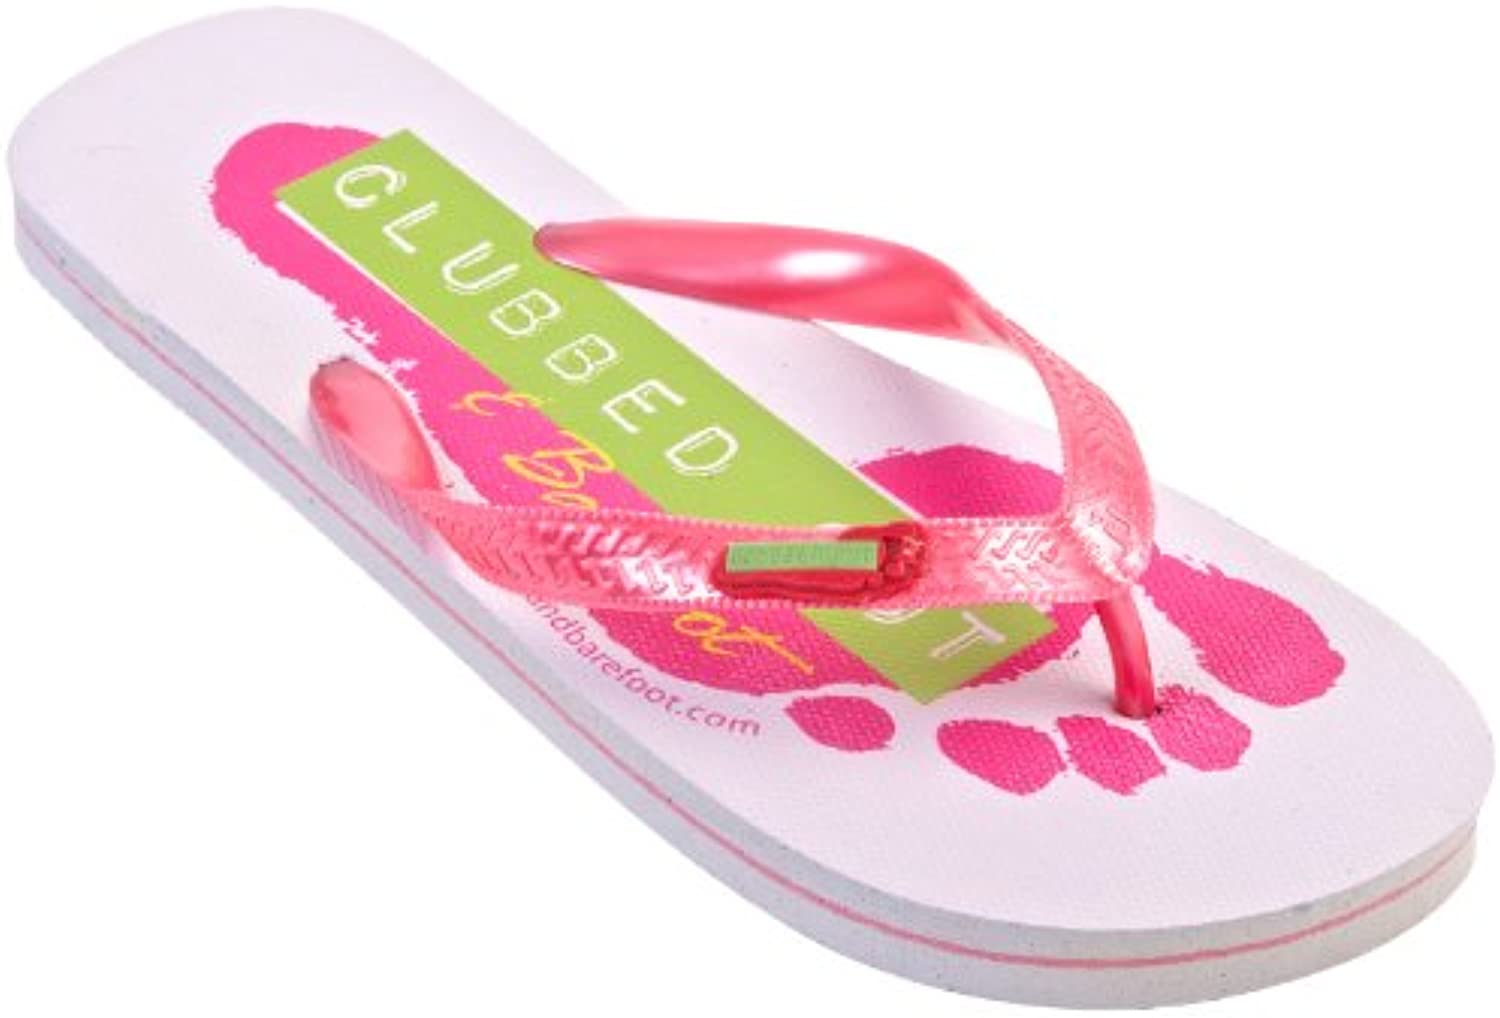 Zohula Infradito Clubbed out out out & Barefoot Acquisto all'Ingrosso - Misura Medium 38-39 | I Materiali Superiori  f6b421